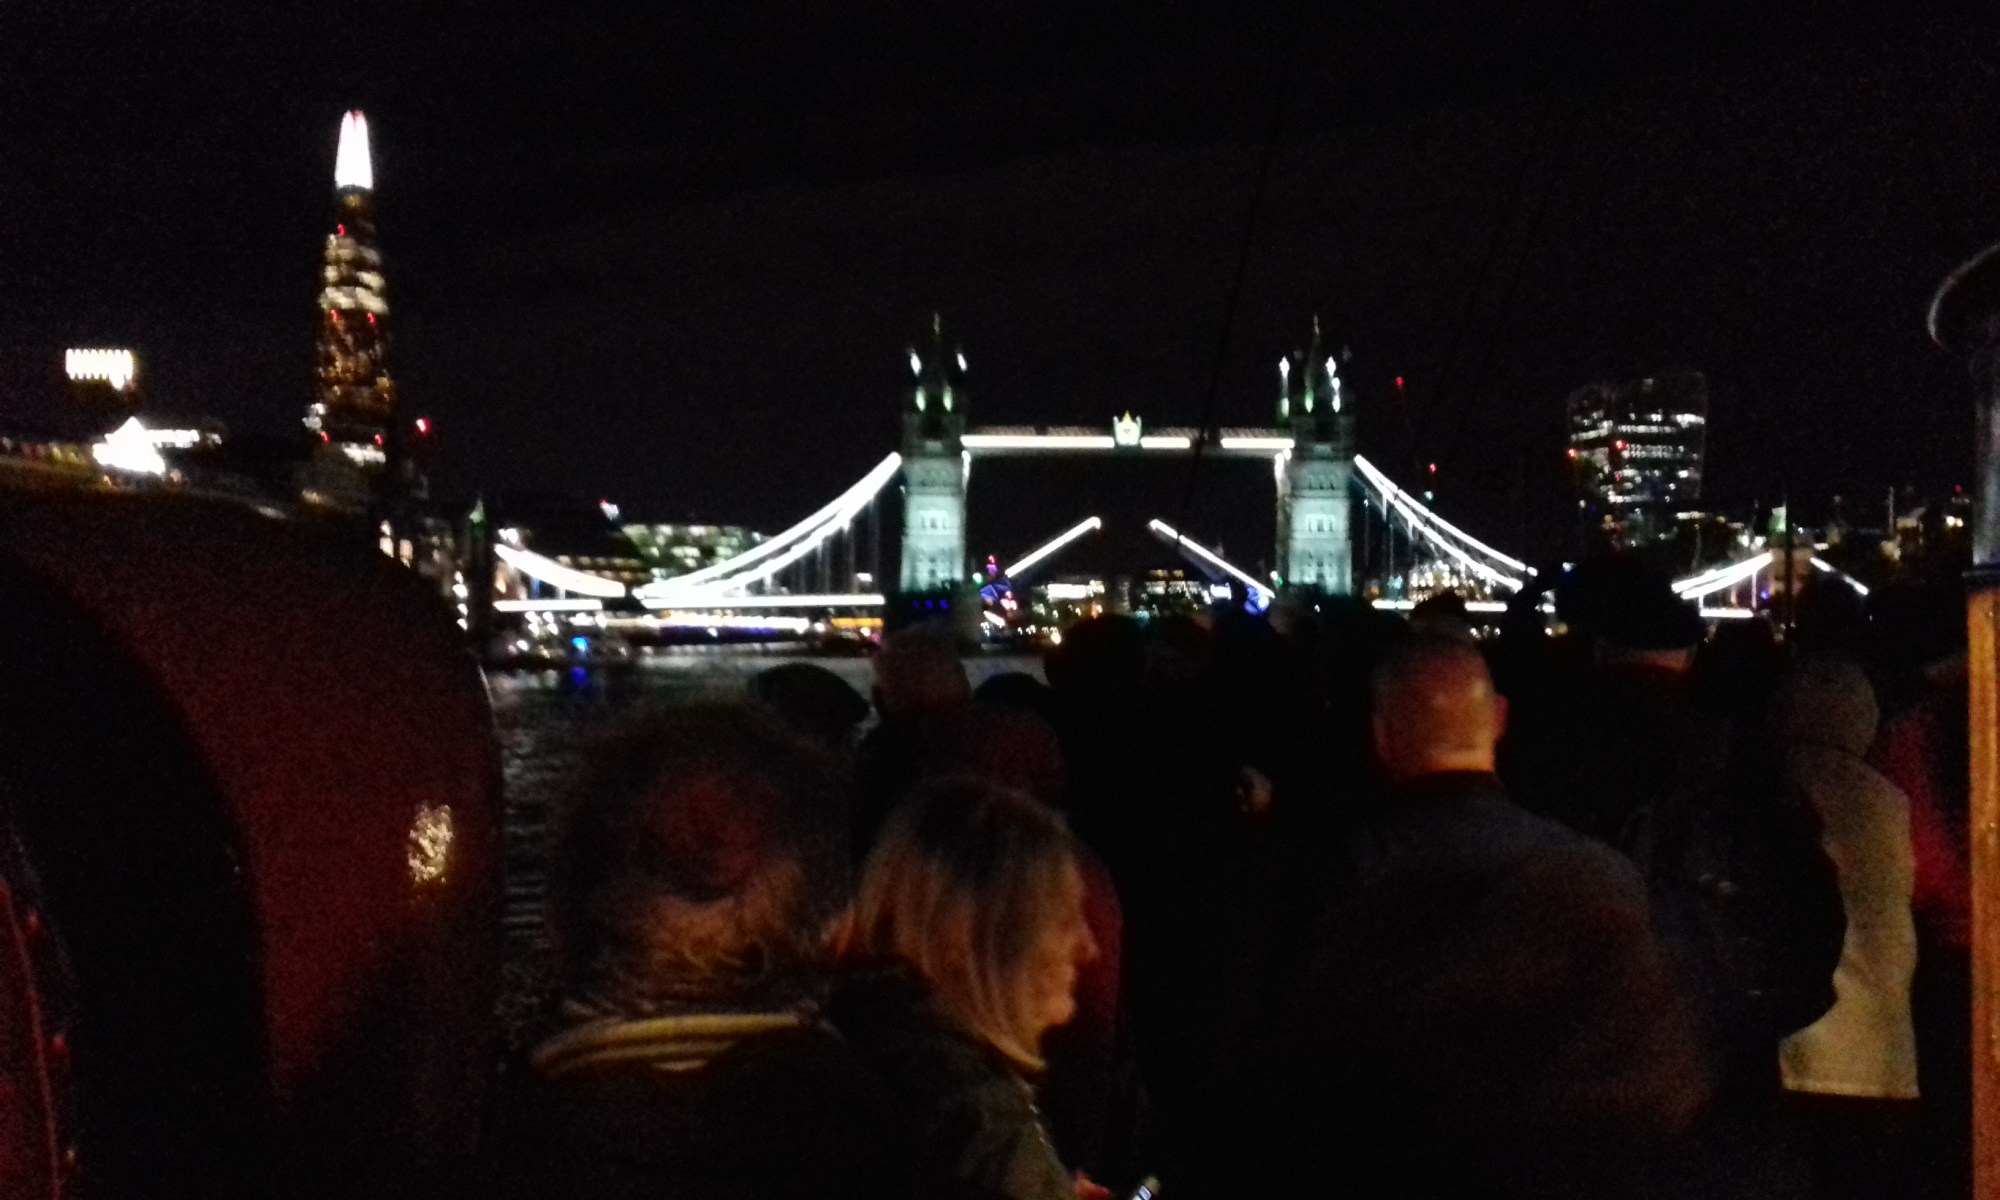 Tower bridge opening